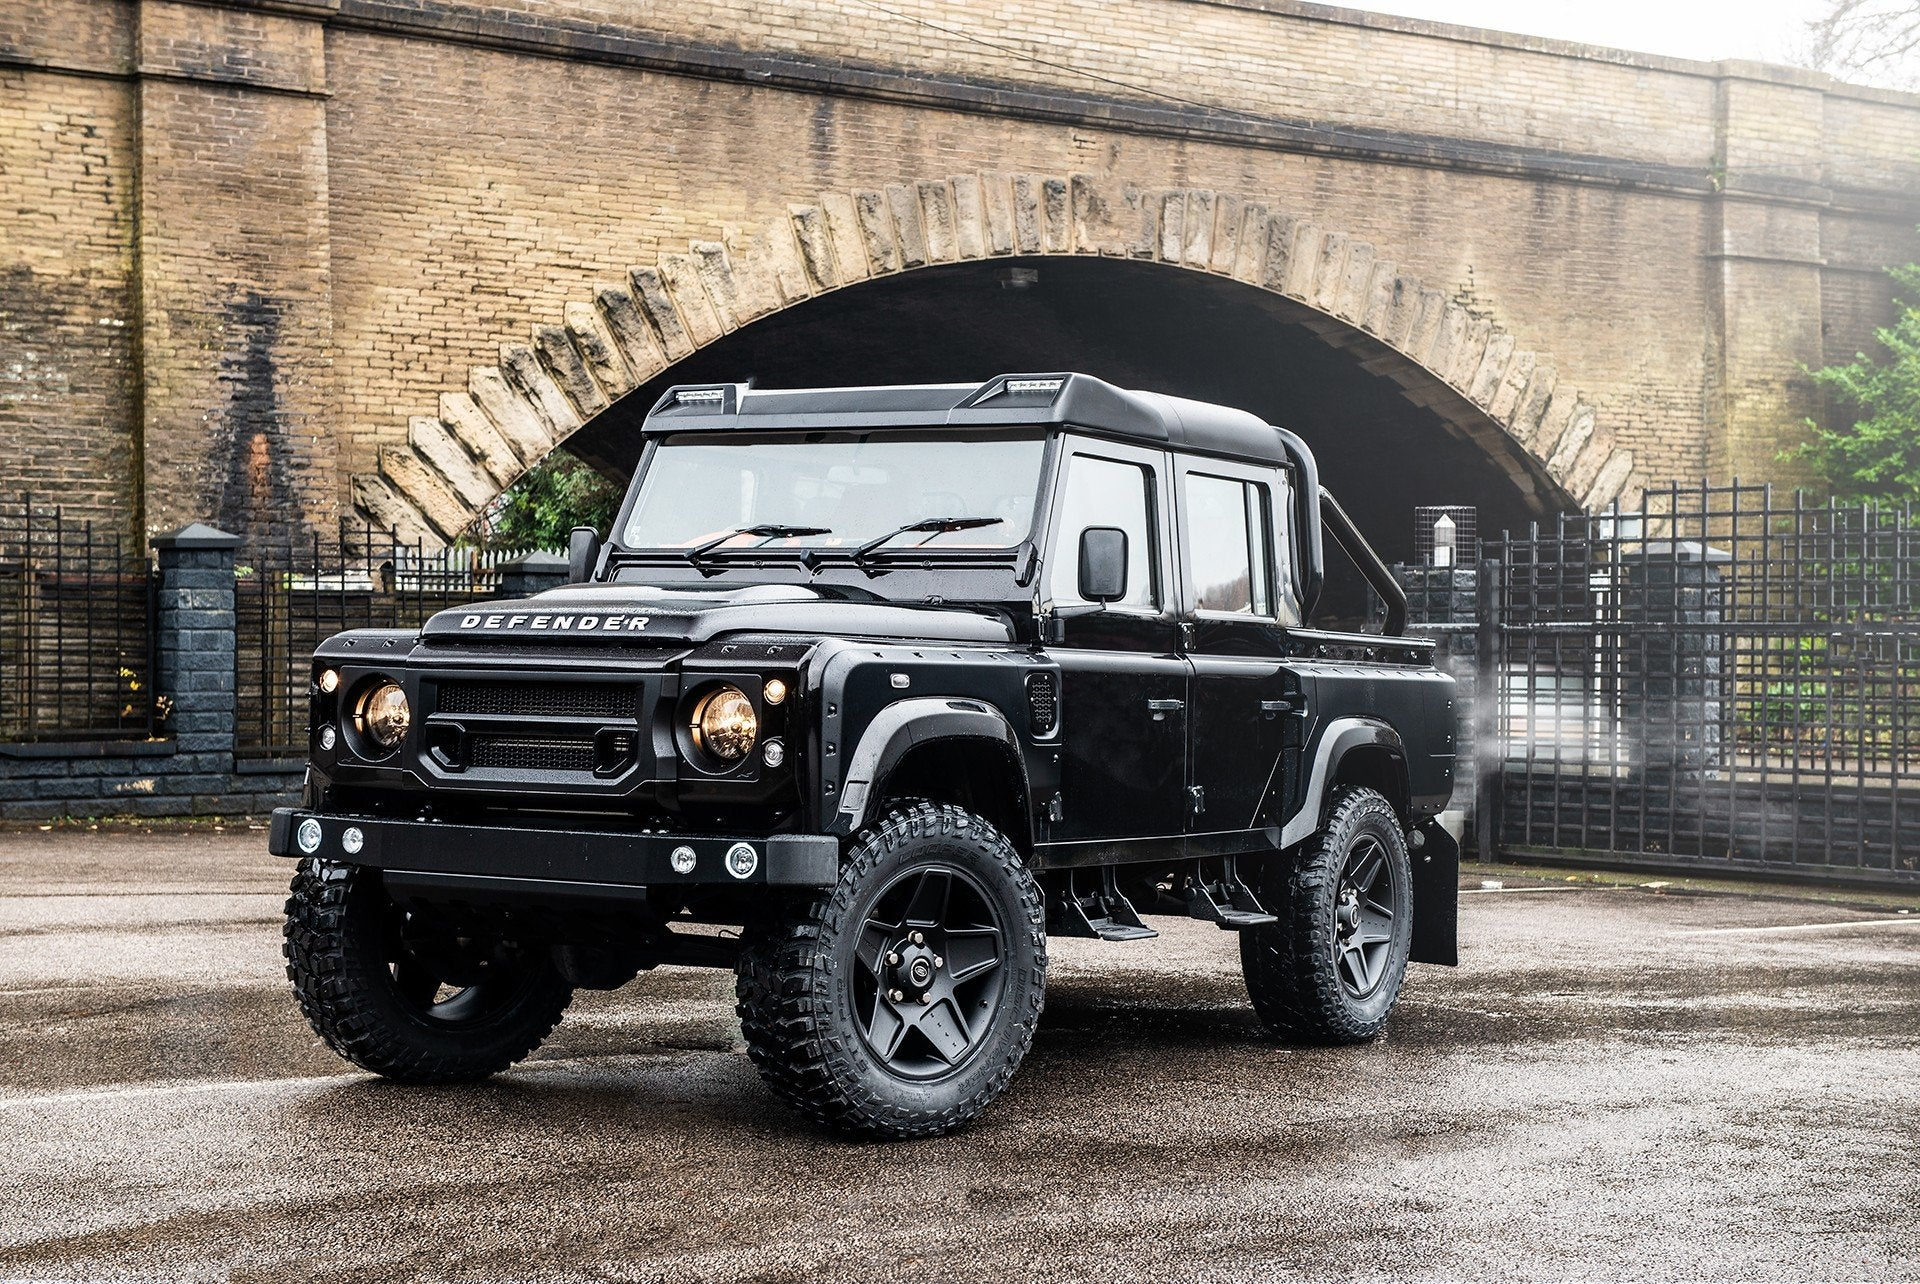 Land Rover Defender 110 (1991-2016) 50Mm Suspension Lift Kit by Chelsea Truck Company - Image 2175